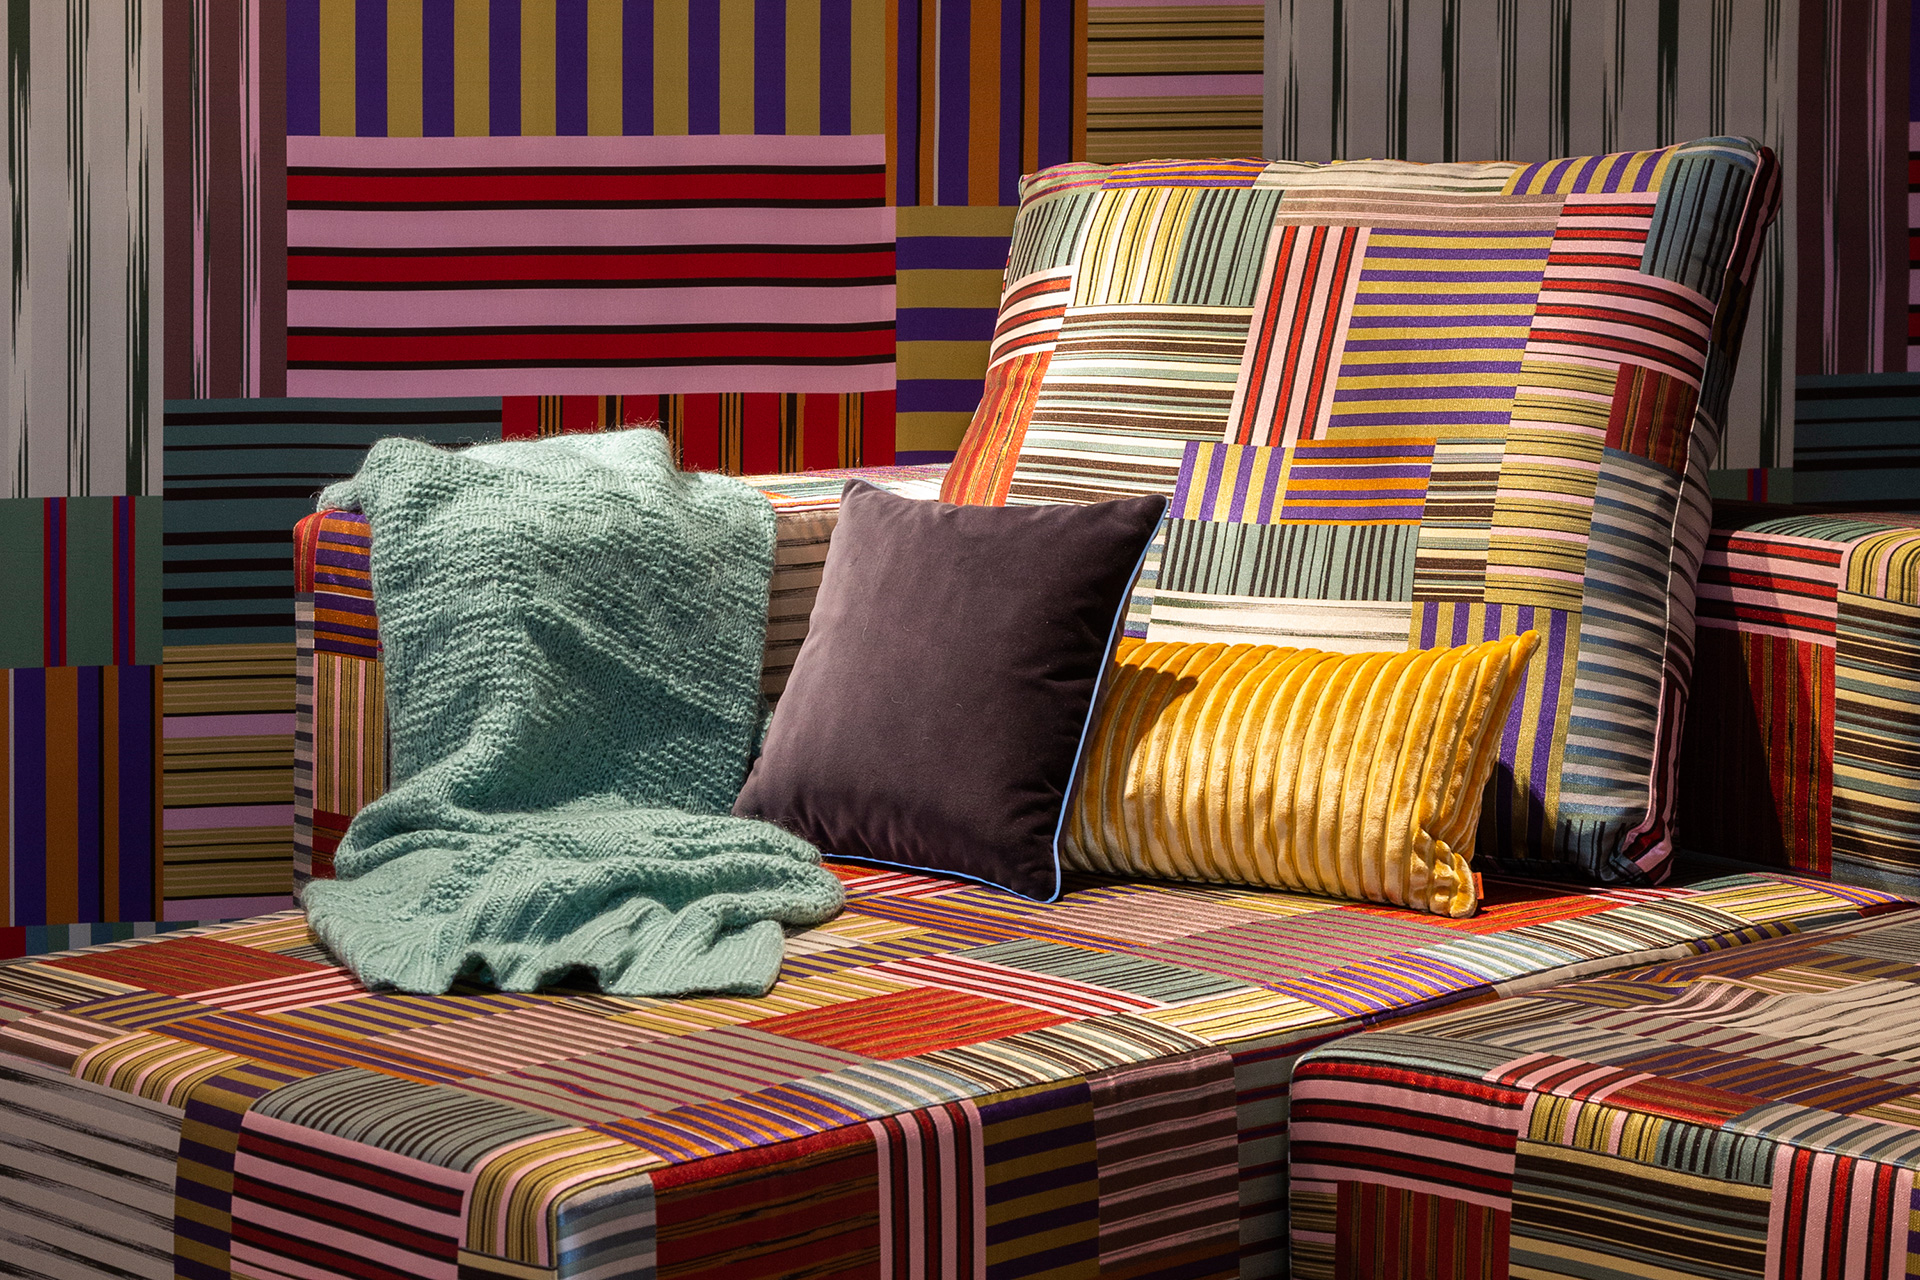 Sofas and cushions from the theme Stripes Mosaic, Collection 2019| Cross Border Conversations| Rosita Missoni, Kunaal Seolekar| STIR